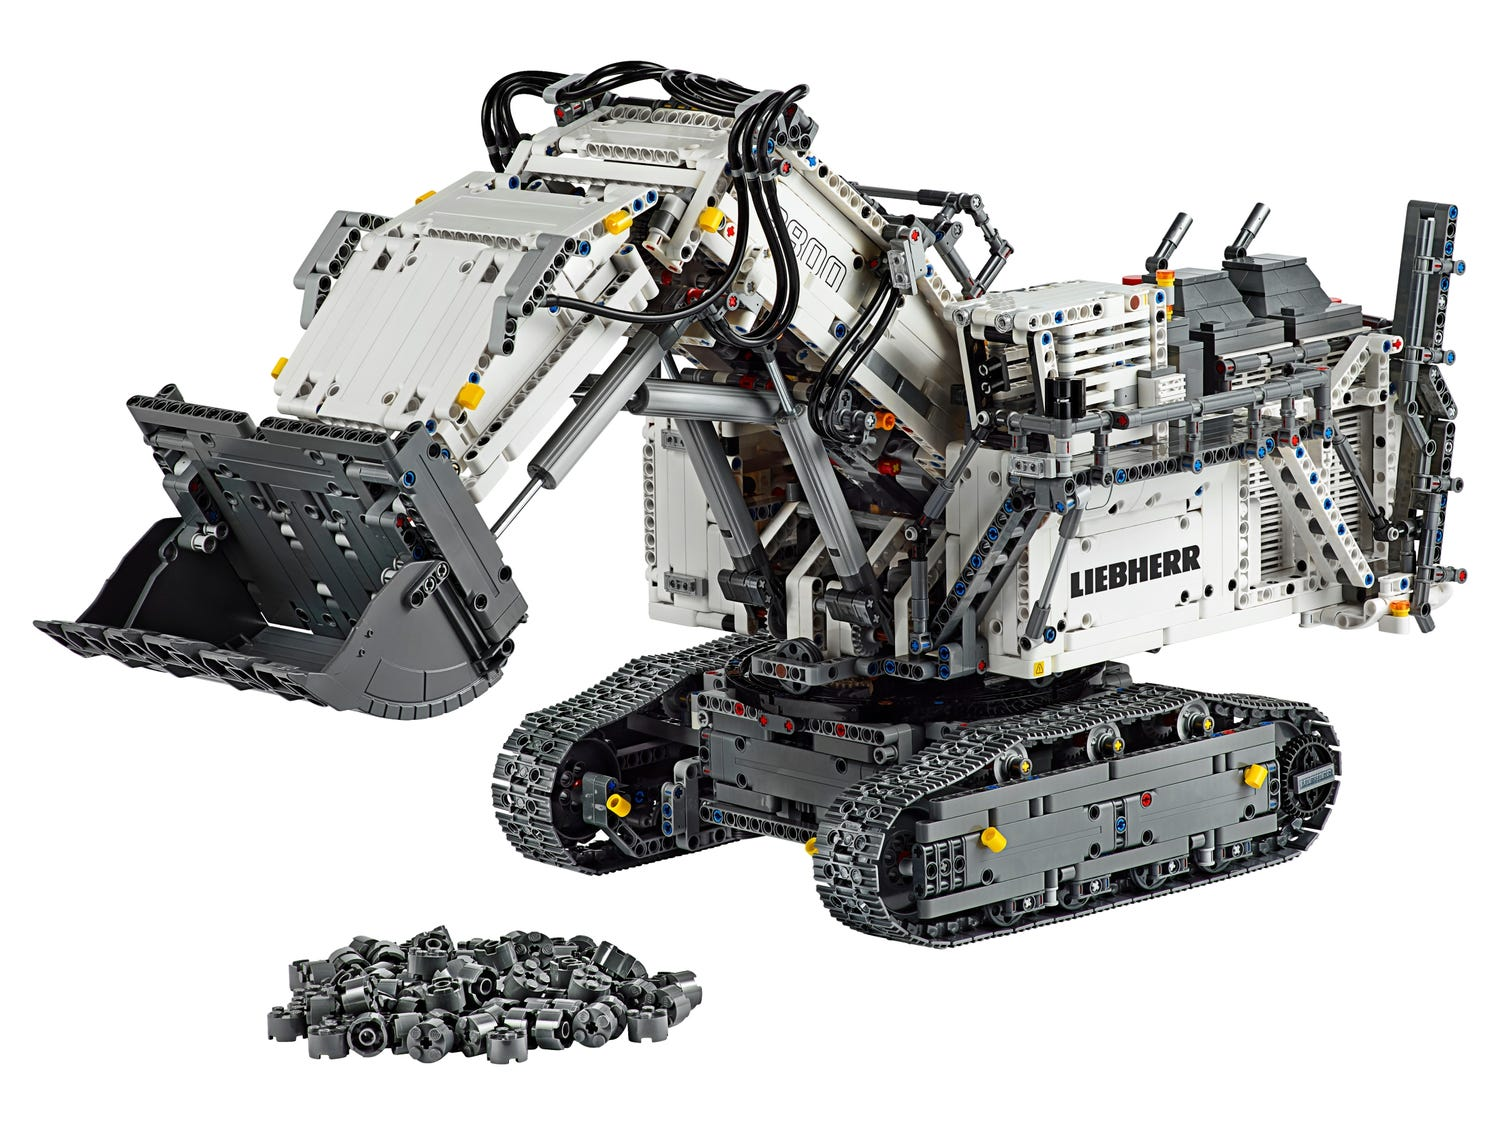 Liebherr R 9800 Excavator 42100 Powered Up Buy Online At The Official Lego Shop Gb